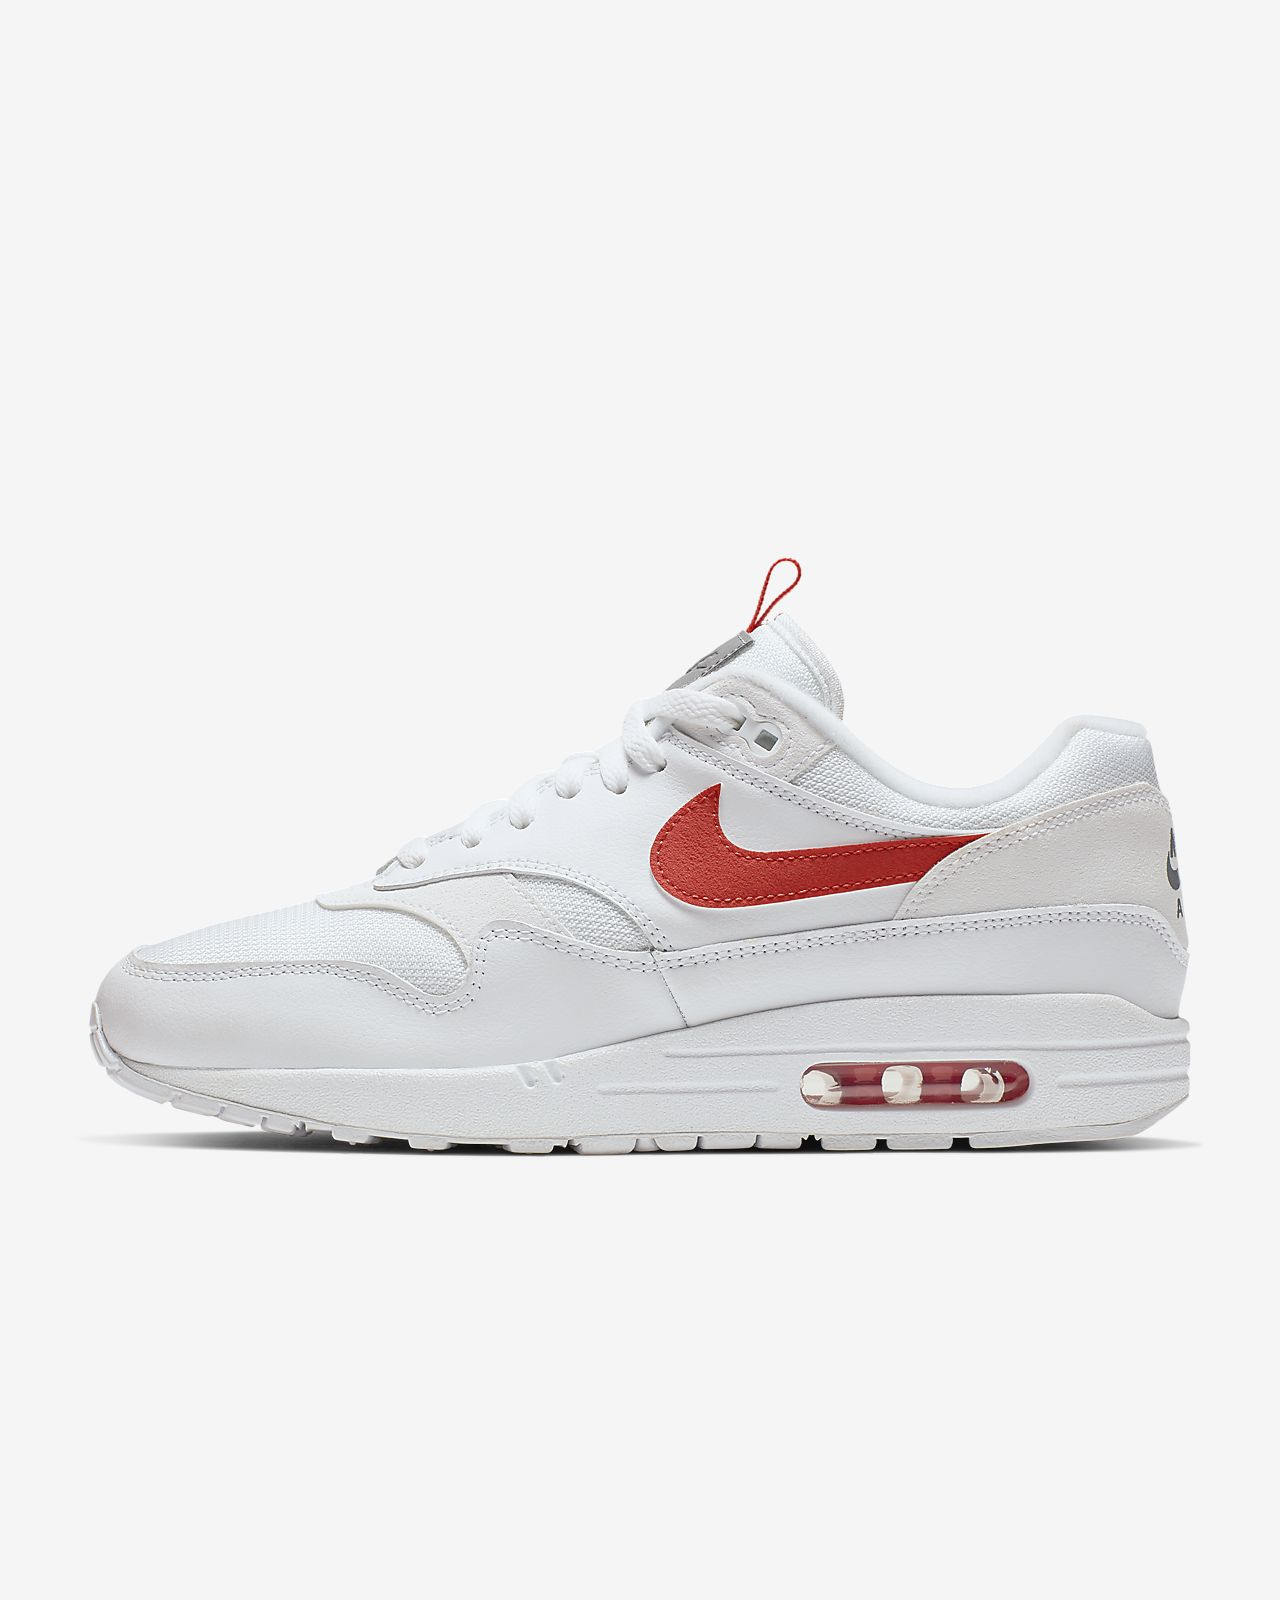 official photos 2c1f1 fee42 Calzado para hombre Nike Air Max 1 SE